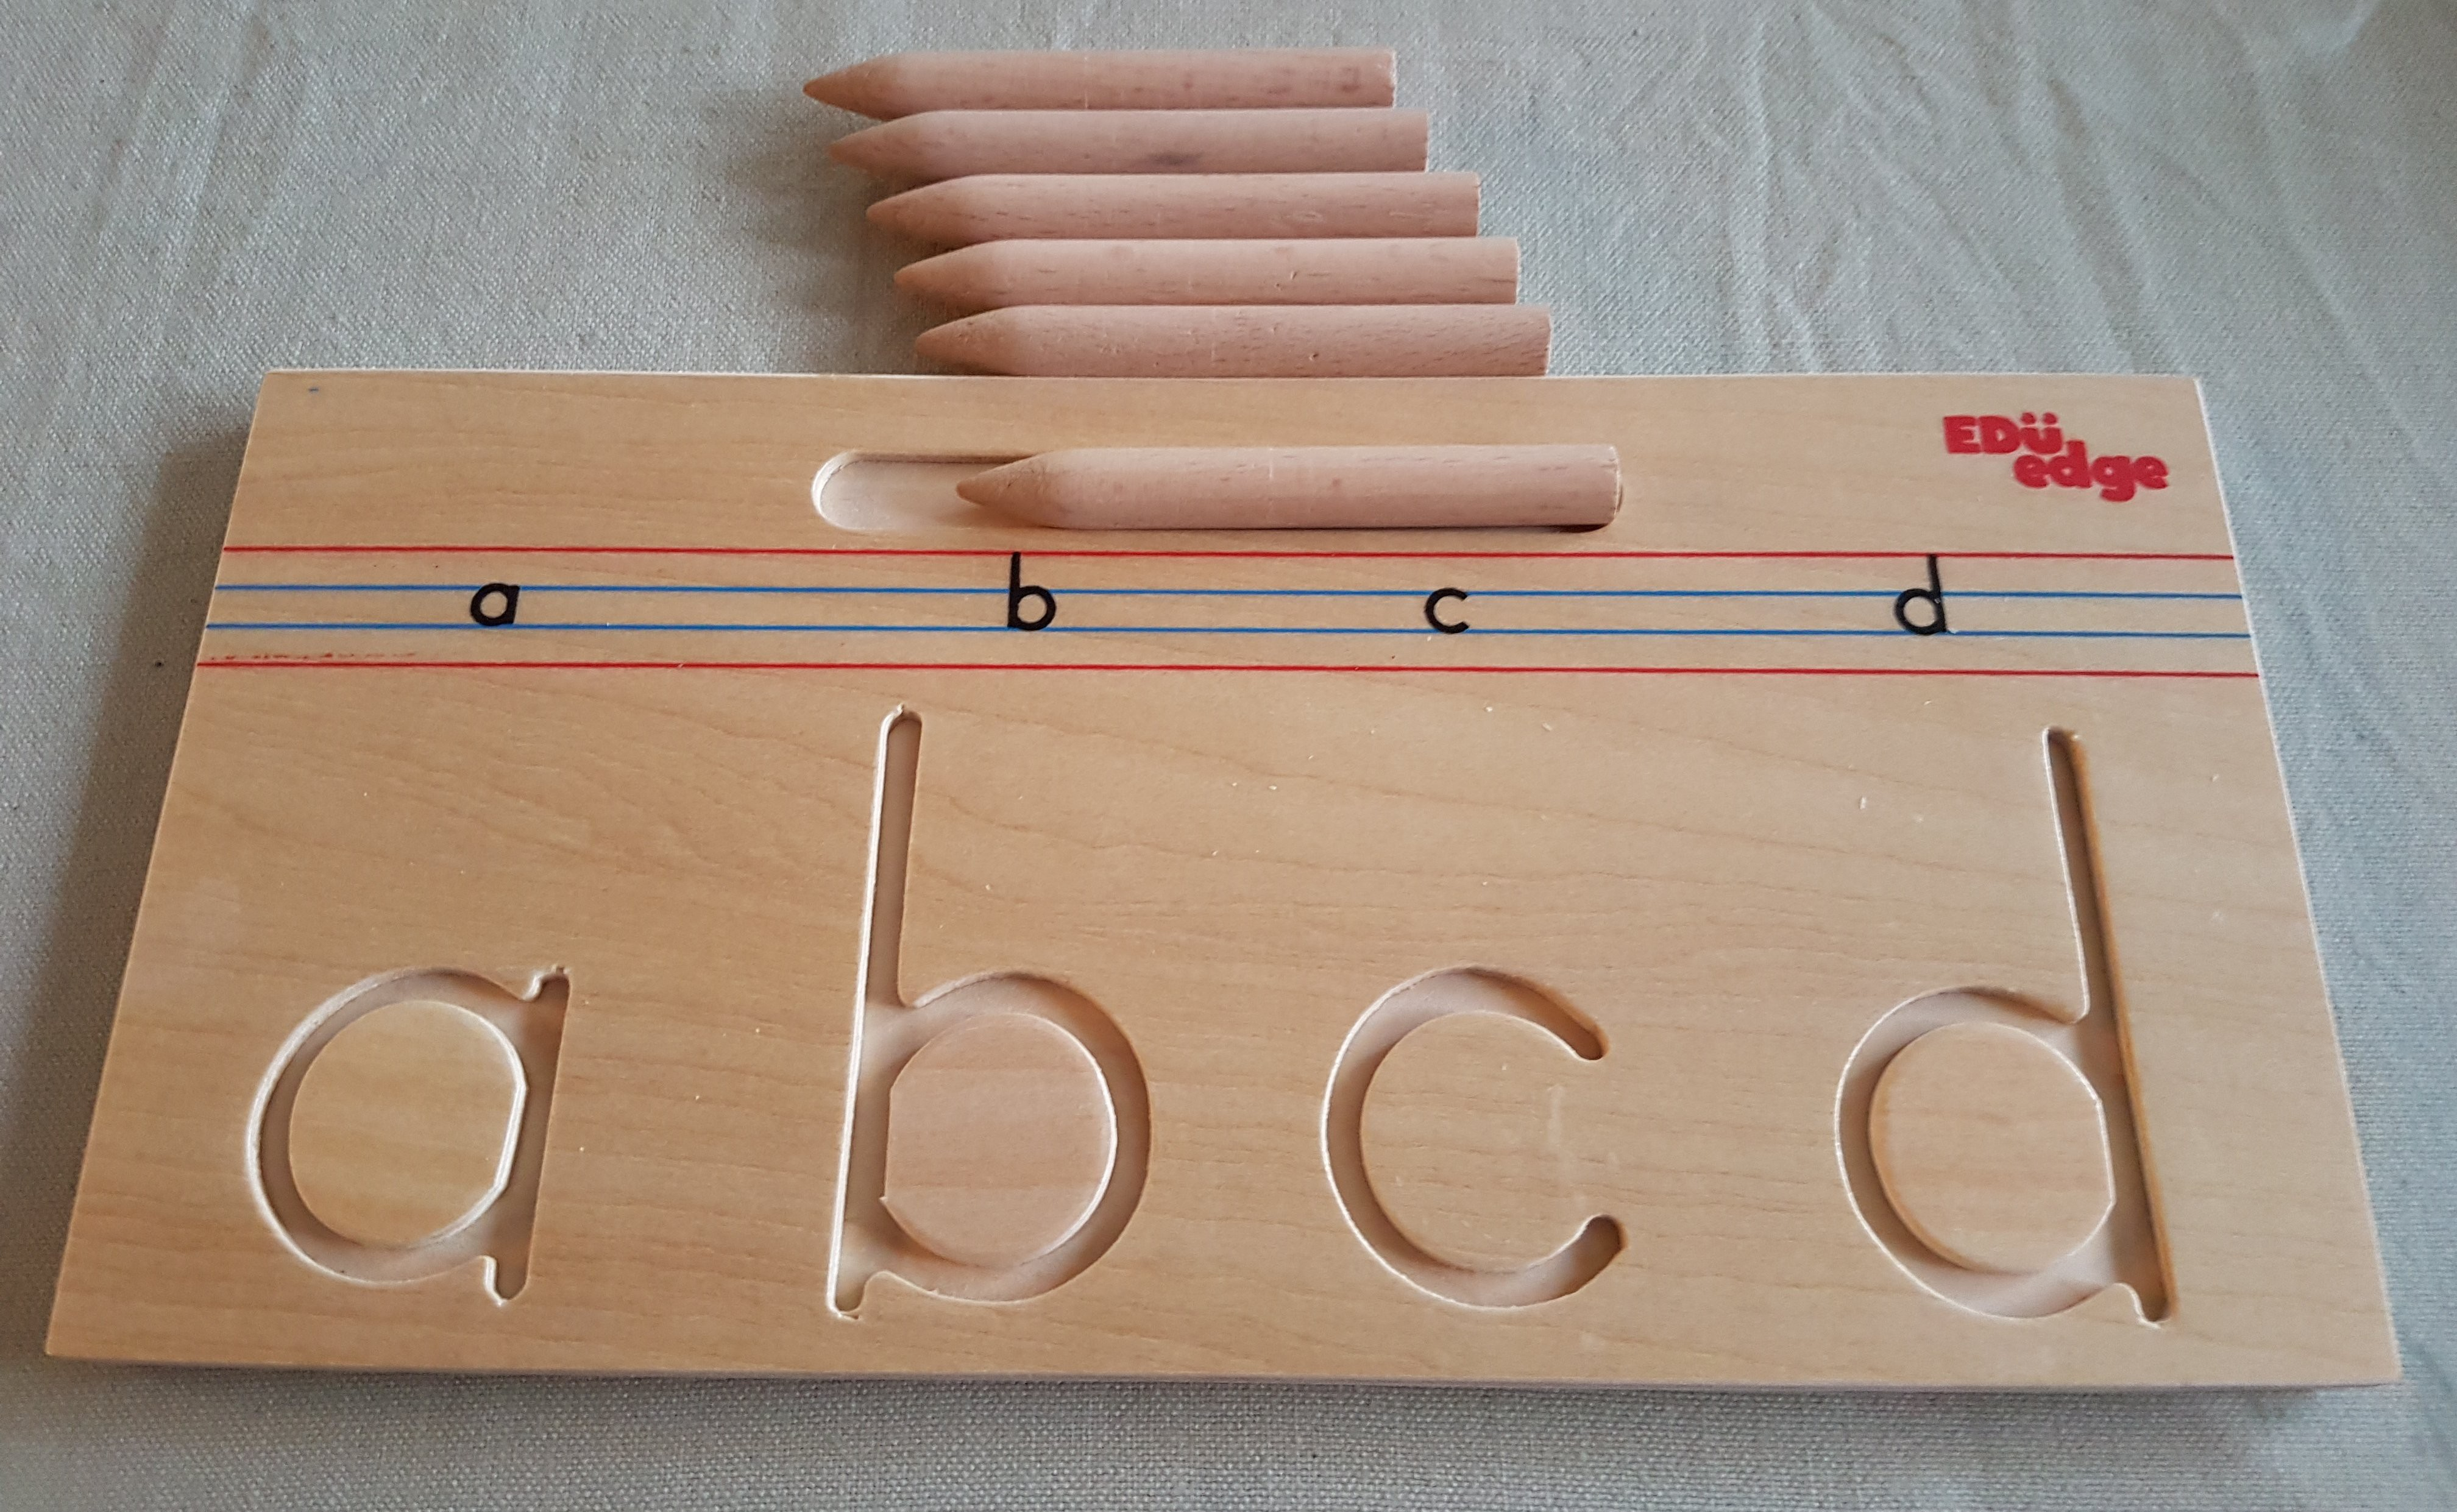 WOODEN ALPHABET TRACING - LOWERCASE A-Z TRACING BO